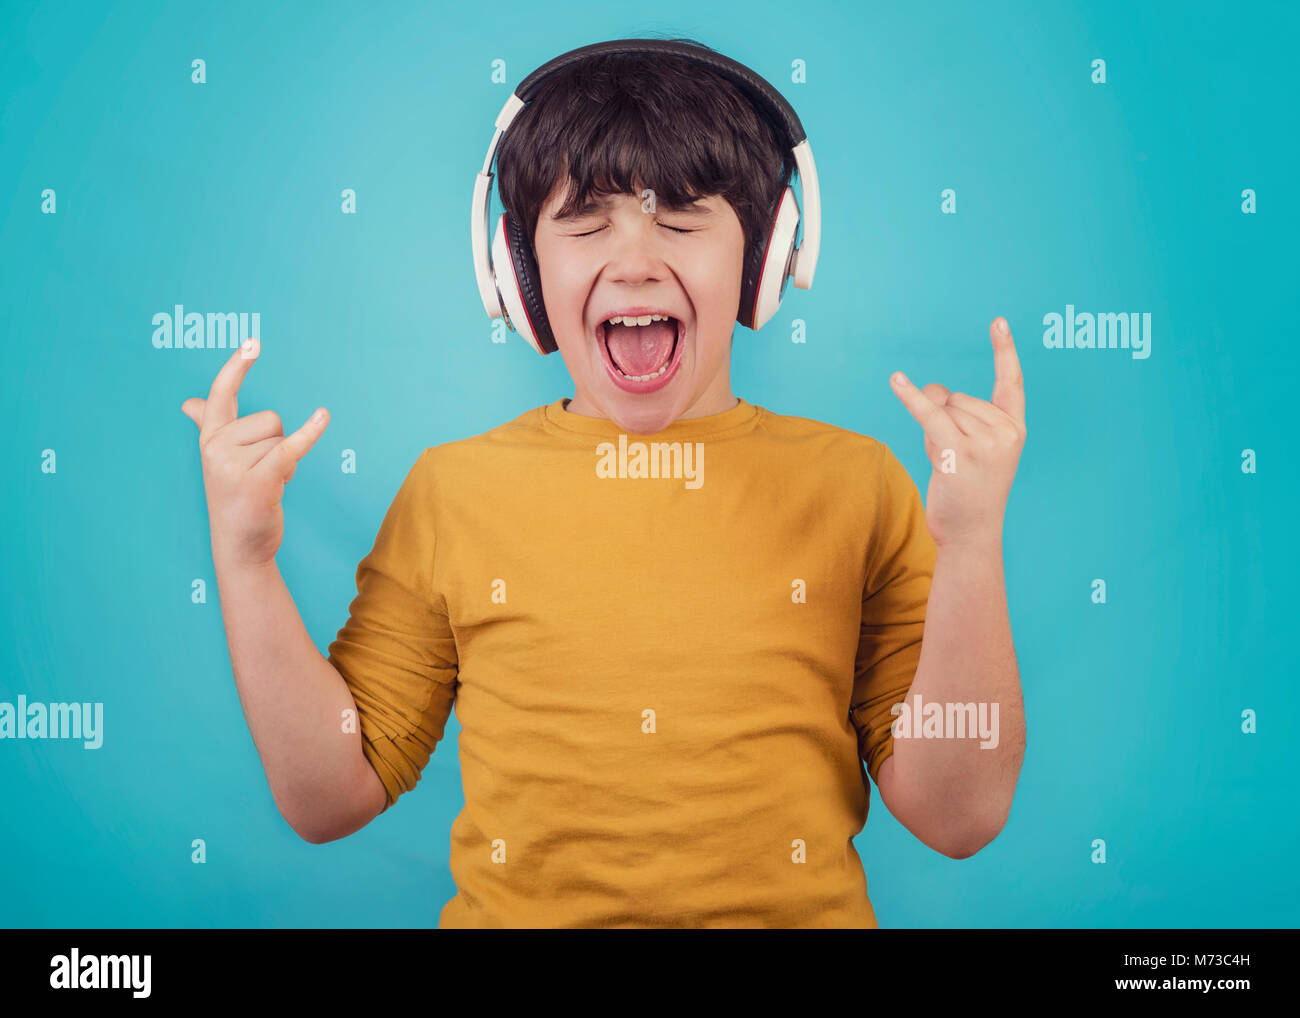 Boy with headphones showing rock sigh - Stock Image